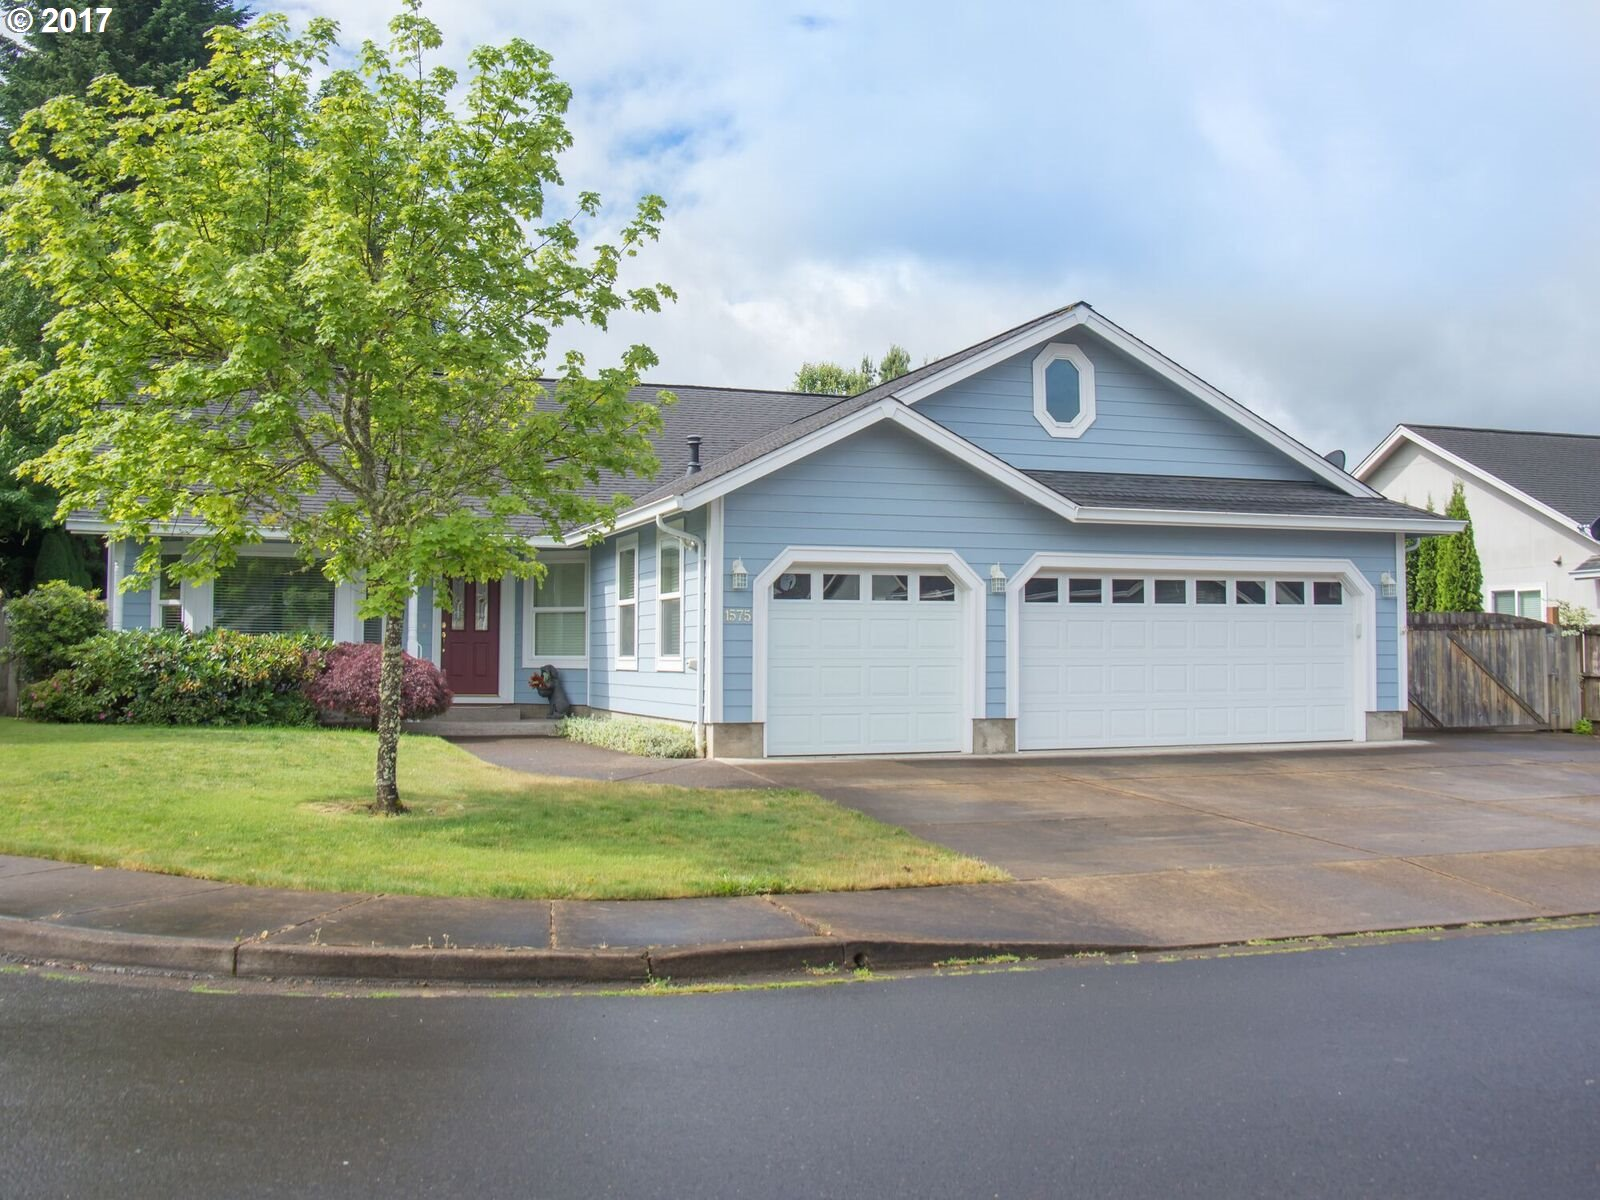 1575 FAIRVIEW PL, Cottage Grove, OR 97424